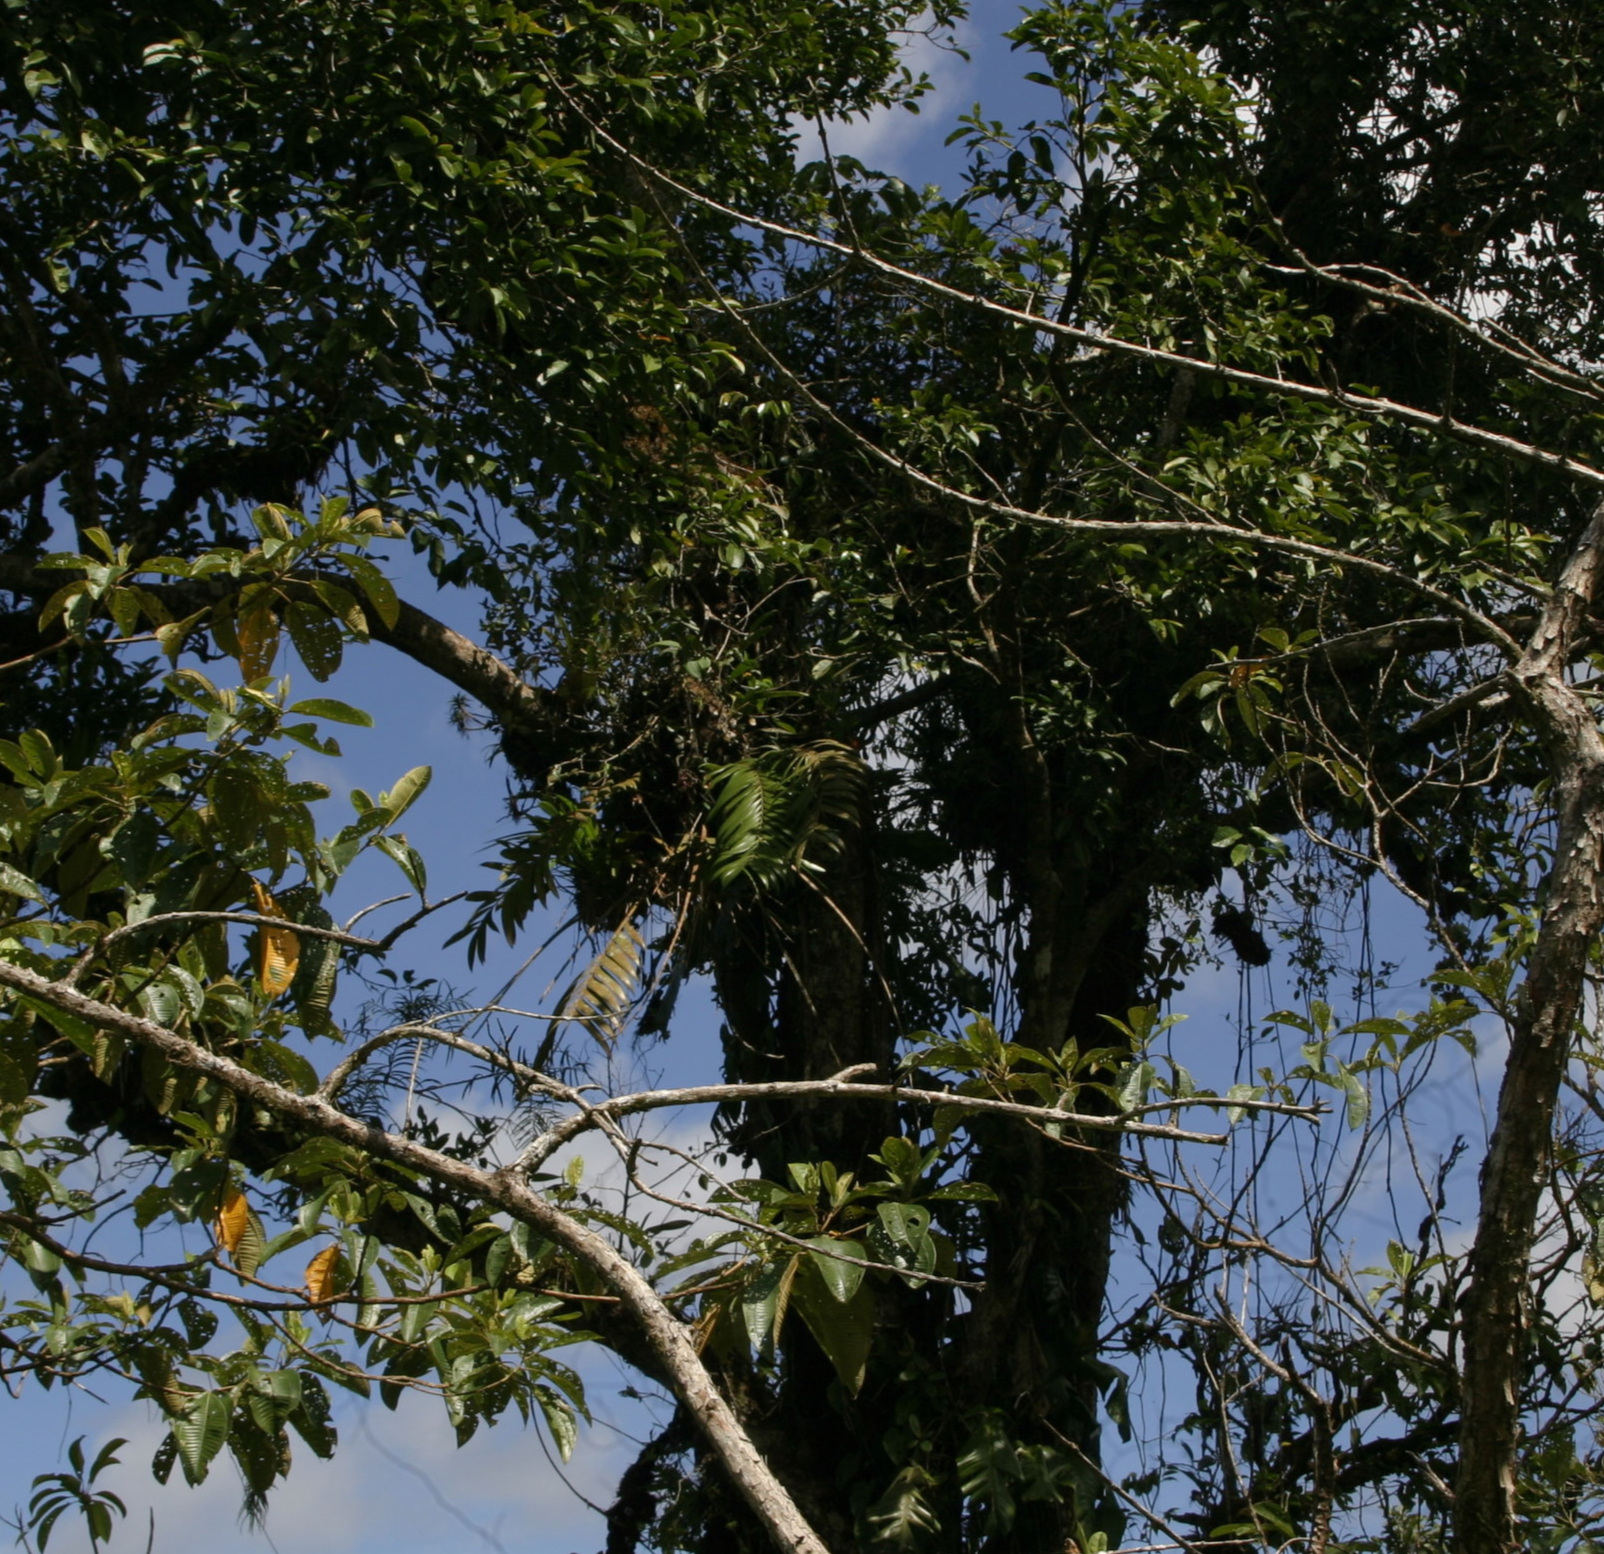 A pair of  Zamia pseudoparasitica  growing in exposed high canopy in degraded TRF, Caribbean lowlands, Panamá.